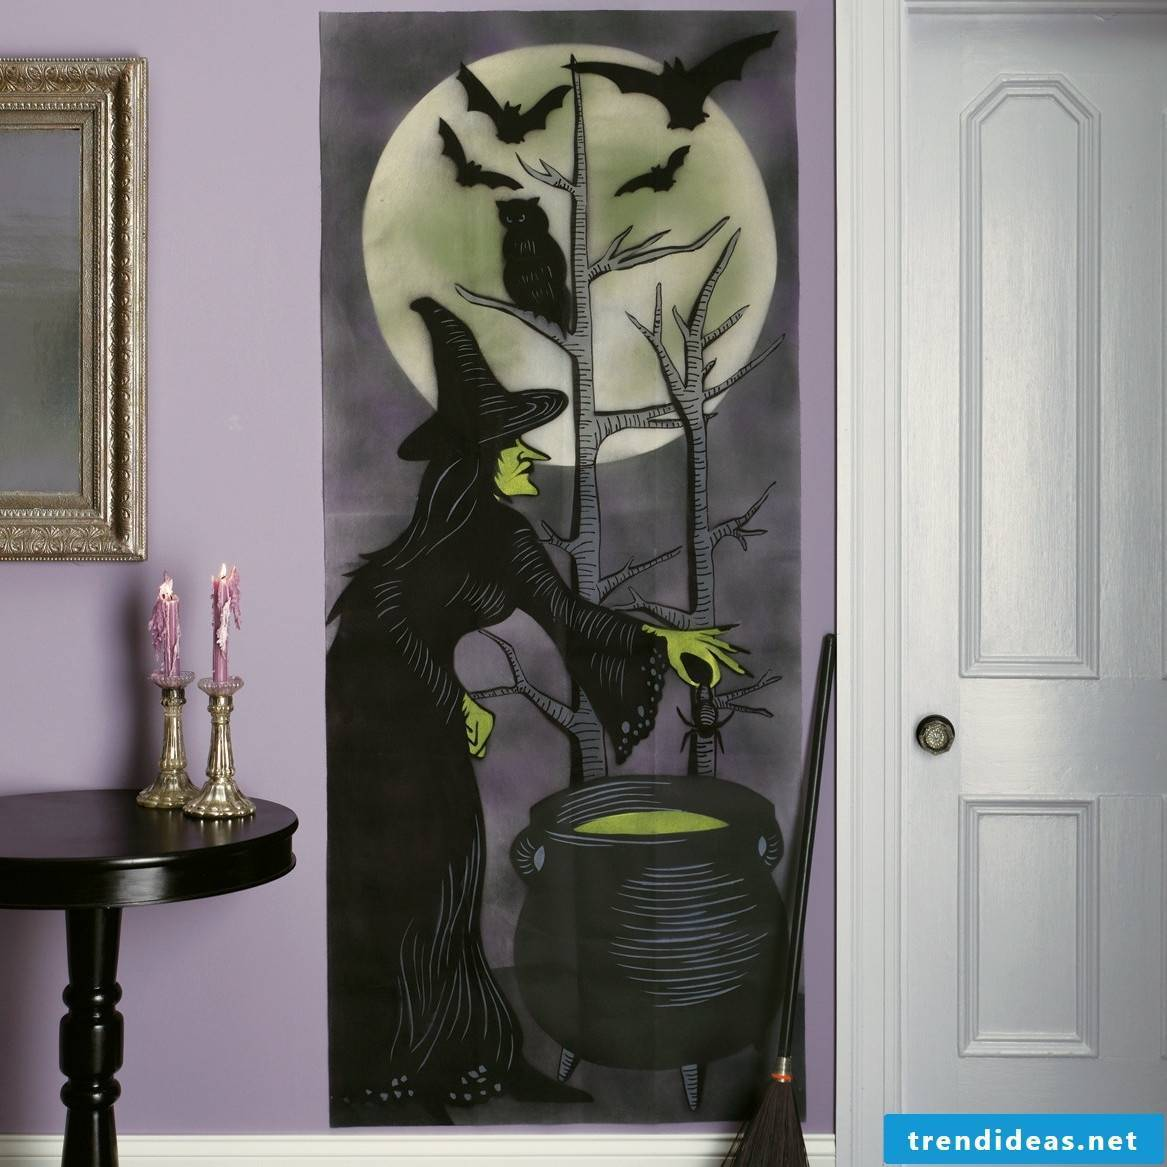 Cool deco poster with Halloween theme